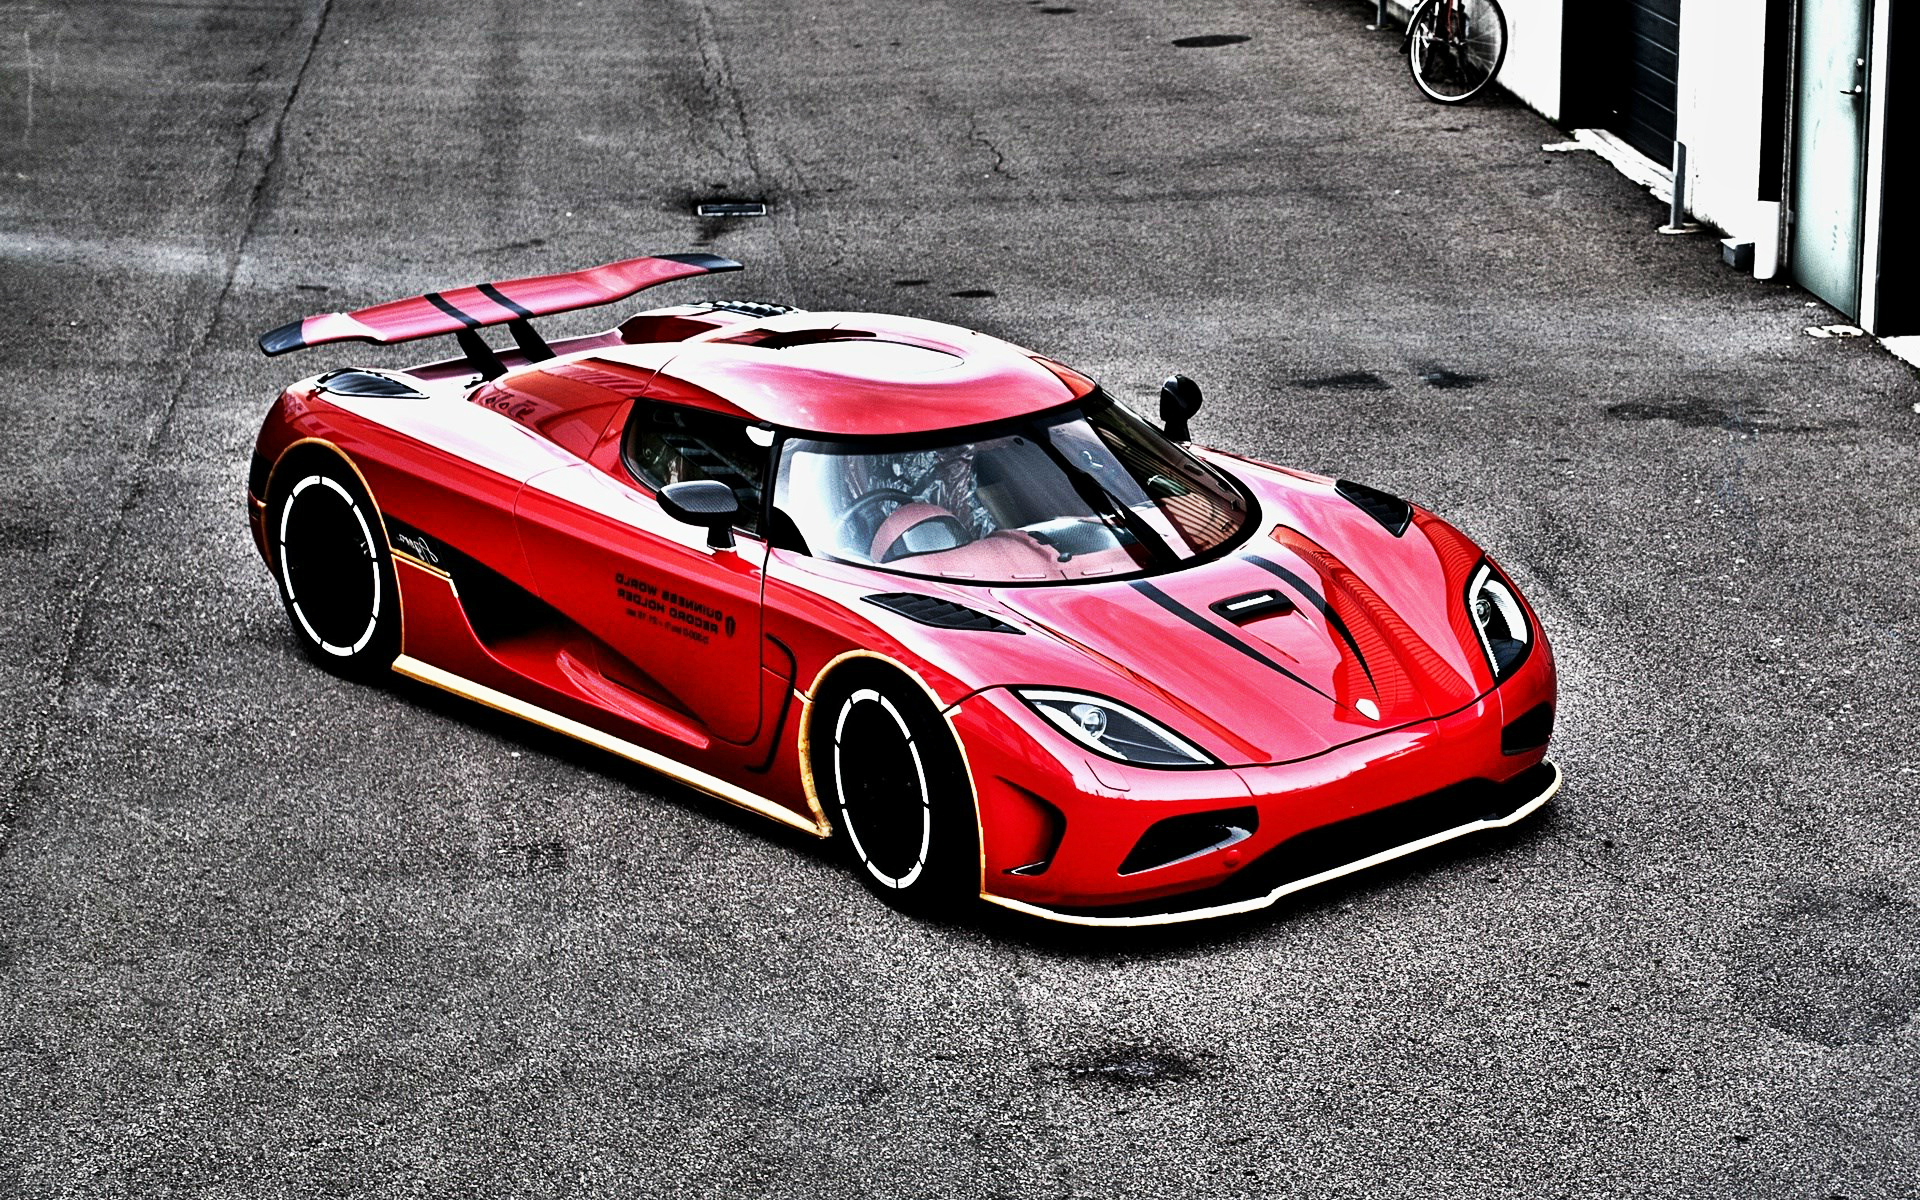 koenigsegg car bike hd wallpaper 1920x1200